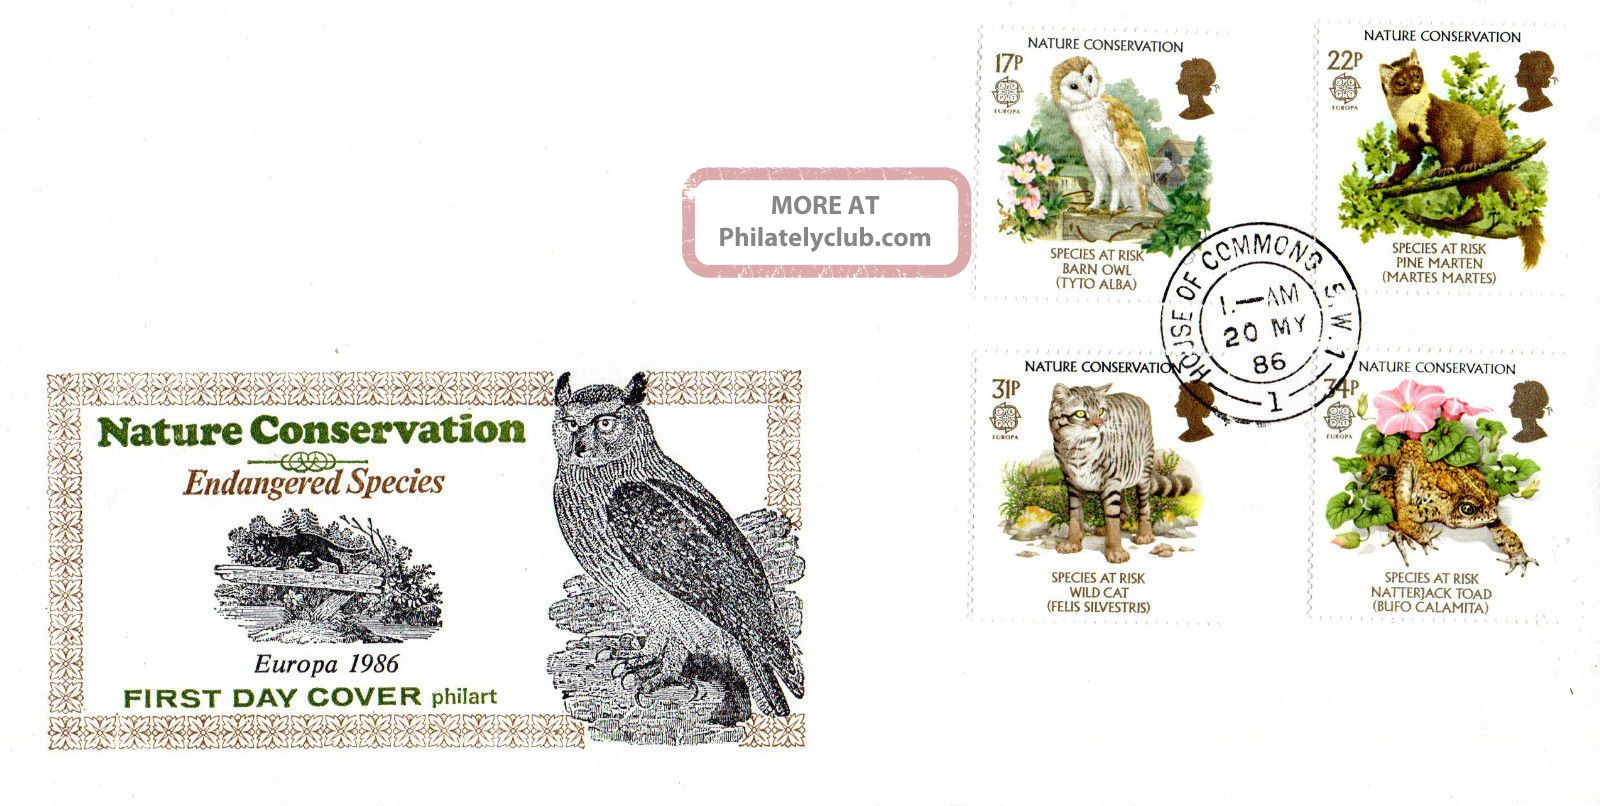 20 May 1986 Nature Conservation Philart First Day Cover House Of Commons Sw1 Cds Animal Kingdom photo